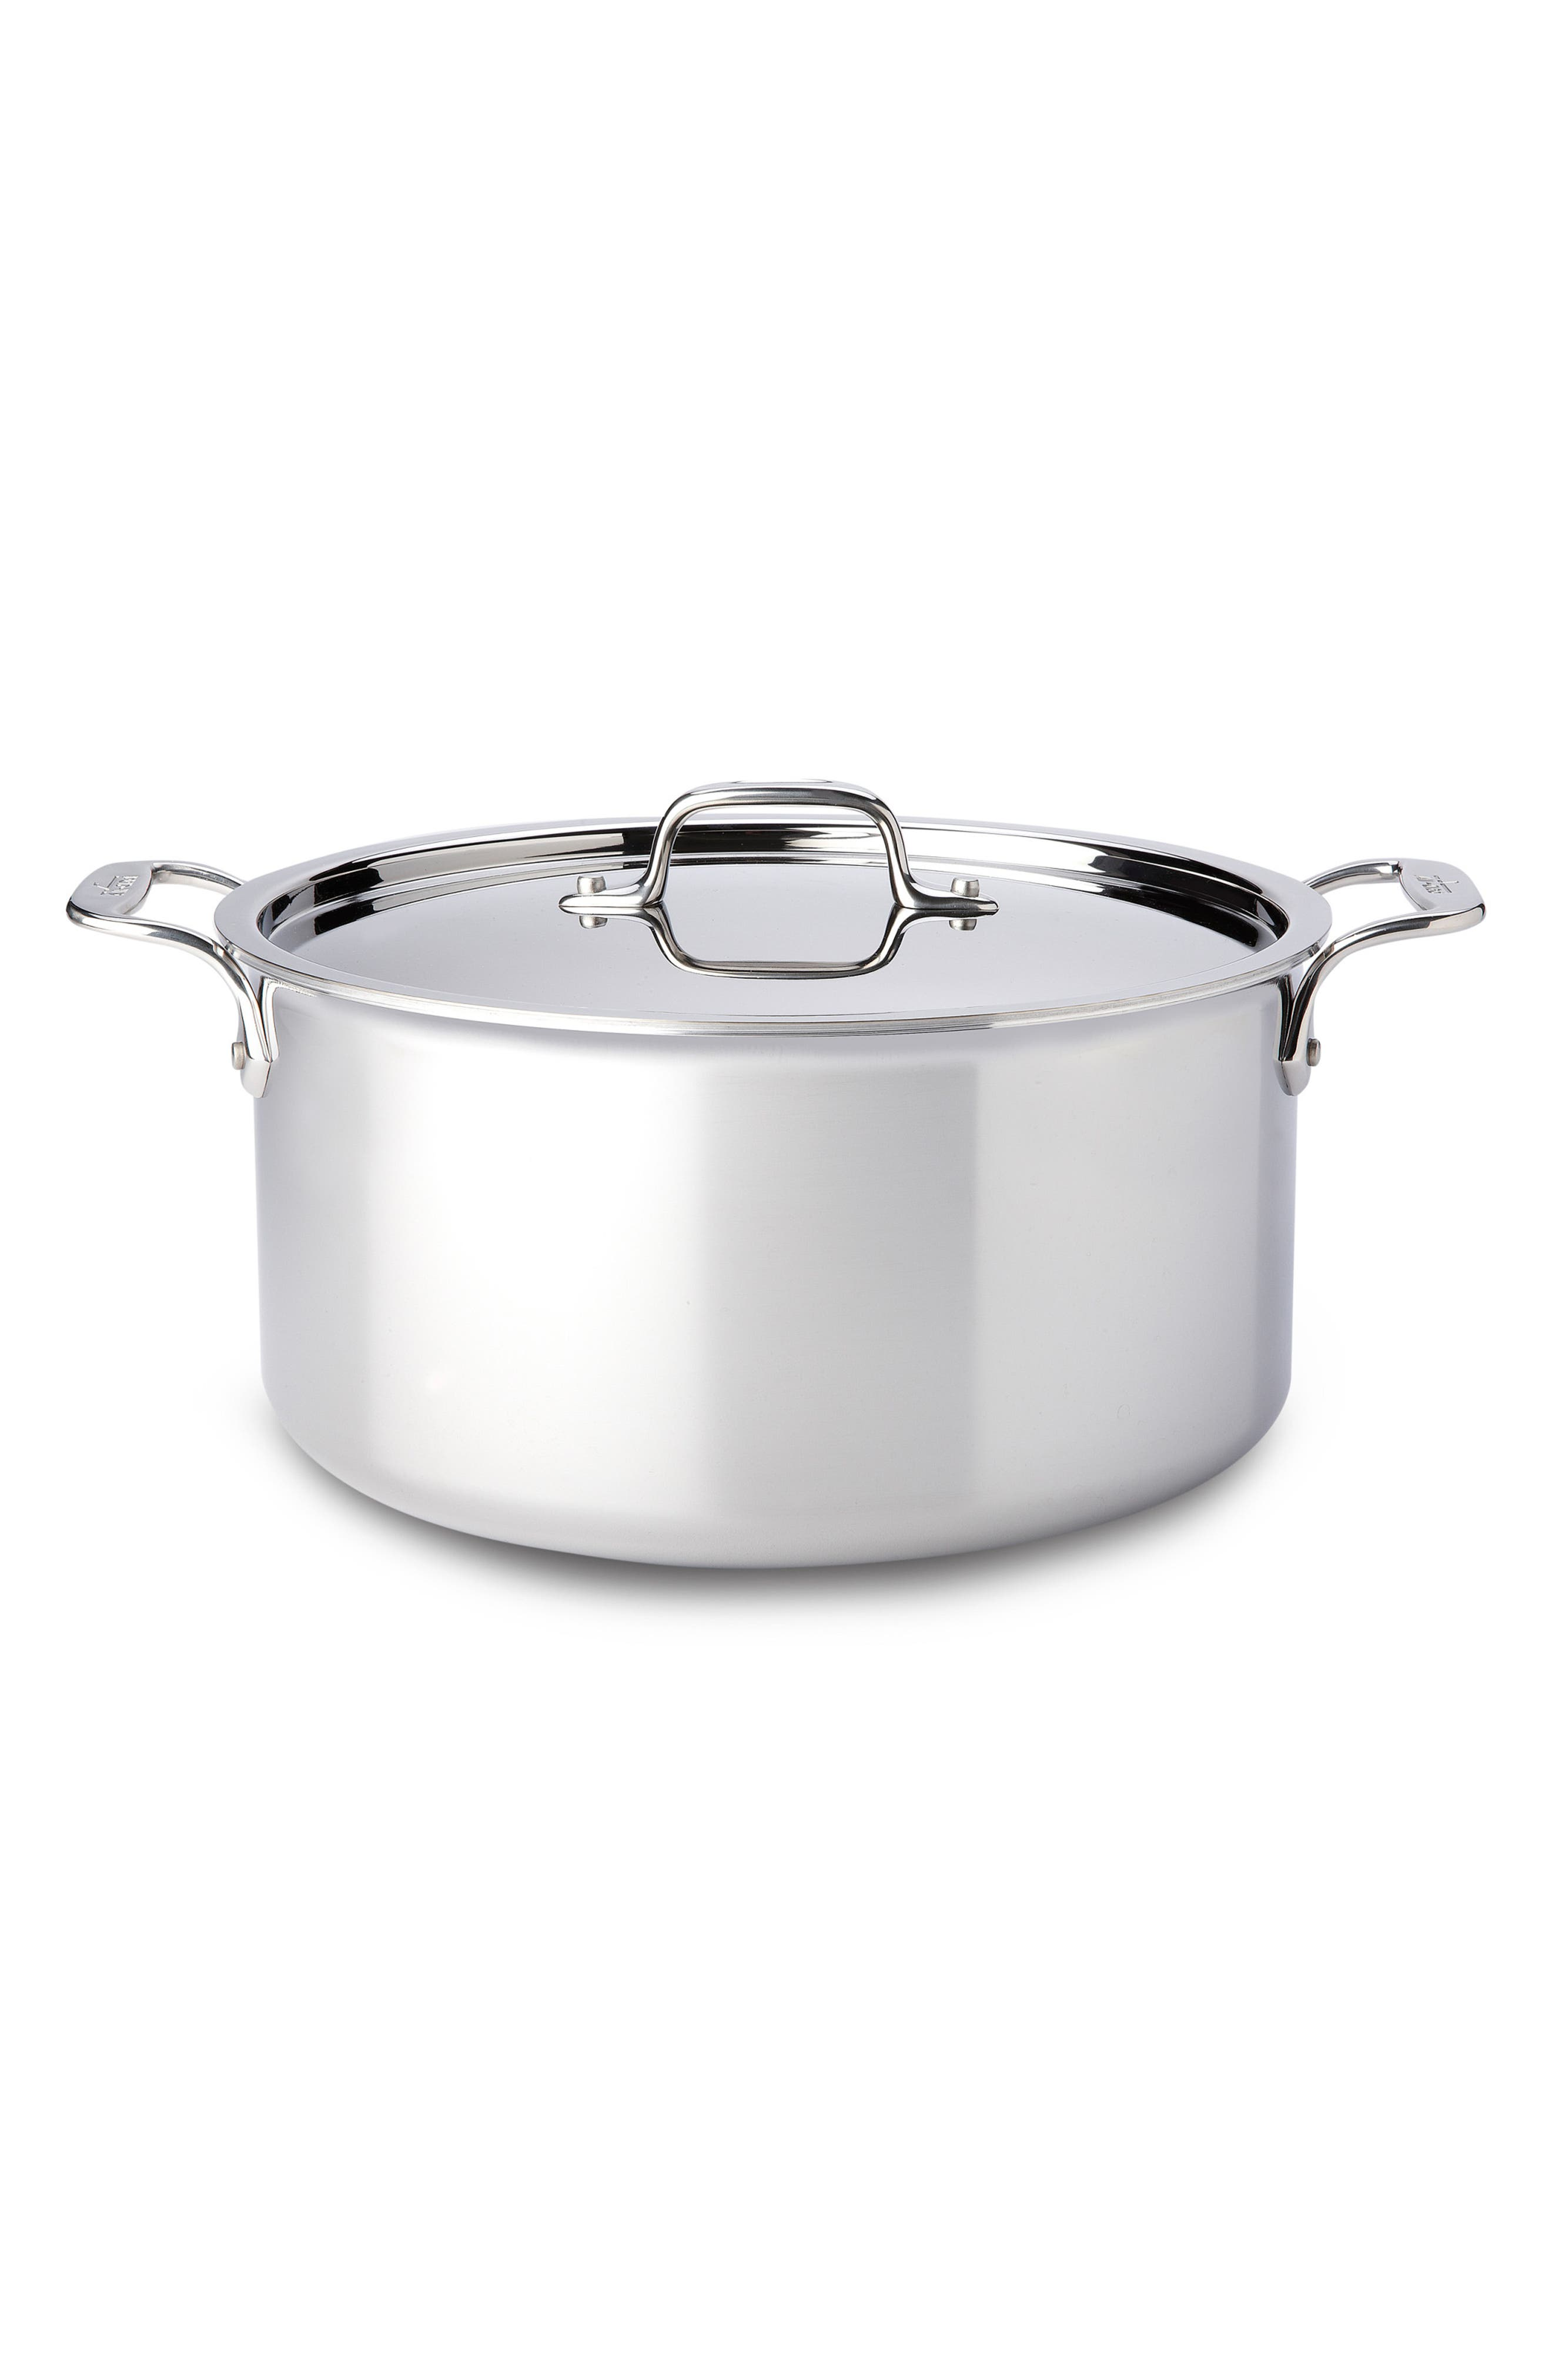 8-Quart Stainless Steel Stockpot,                         Main,                         color, SILVER